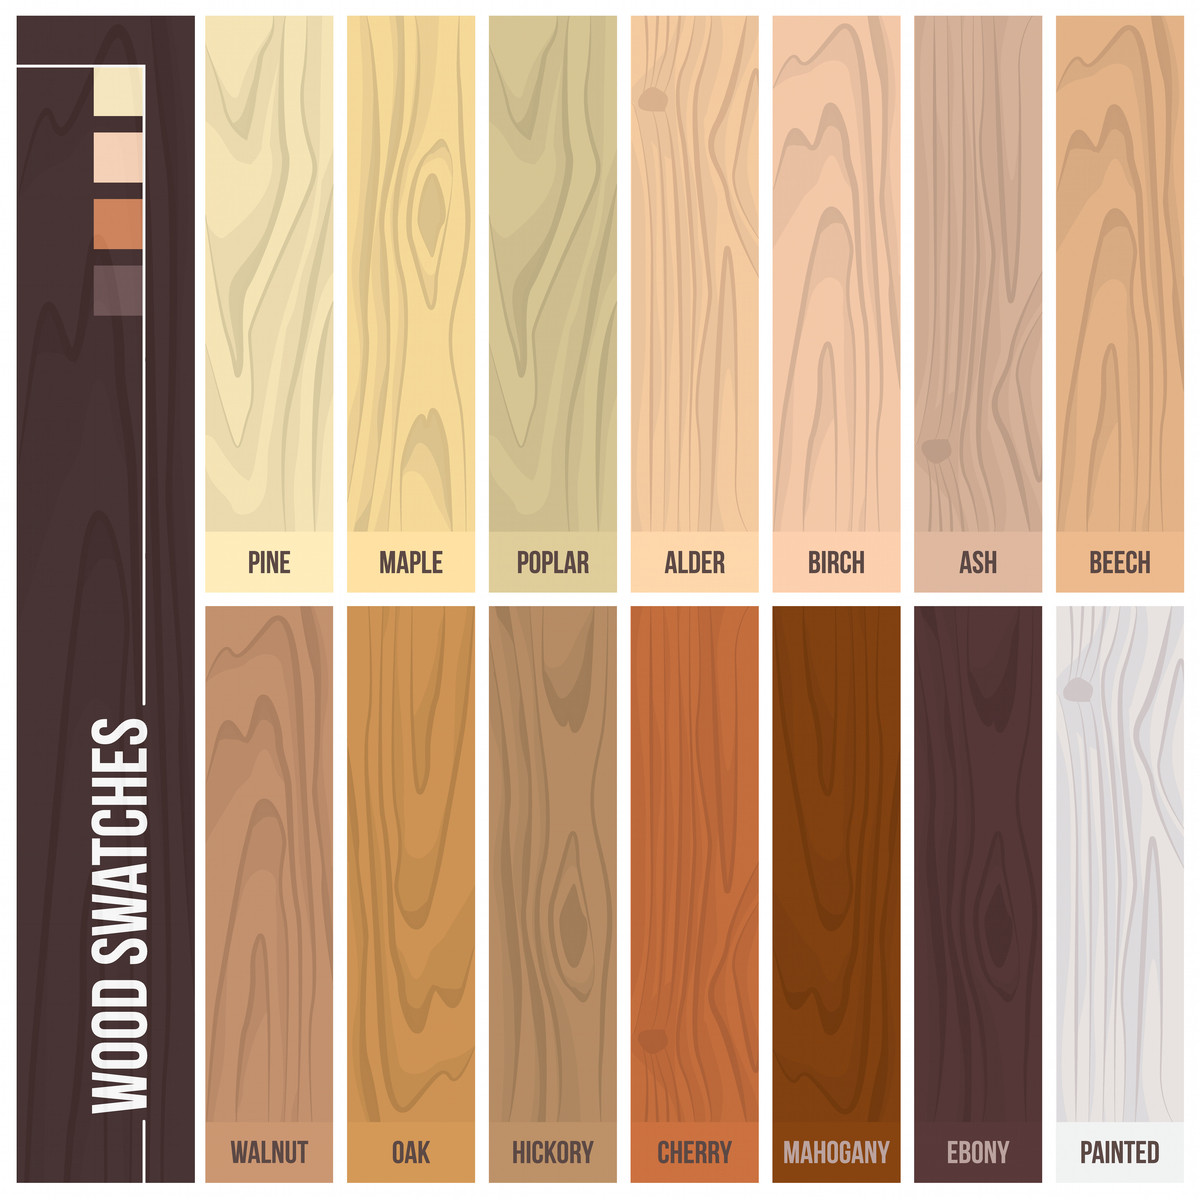 Bamboo Vs Hardwood Flooring Durability Of 12 Types Of Hardwood Flooring Species Styles Edging Dimensions Pertaining to Types Of Hardwood Flooring Illustrated Guide